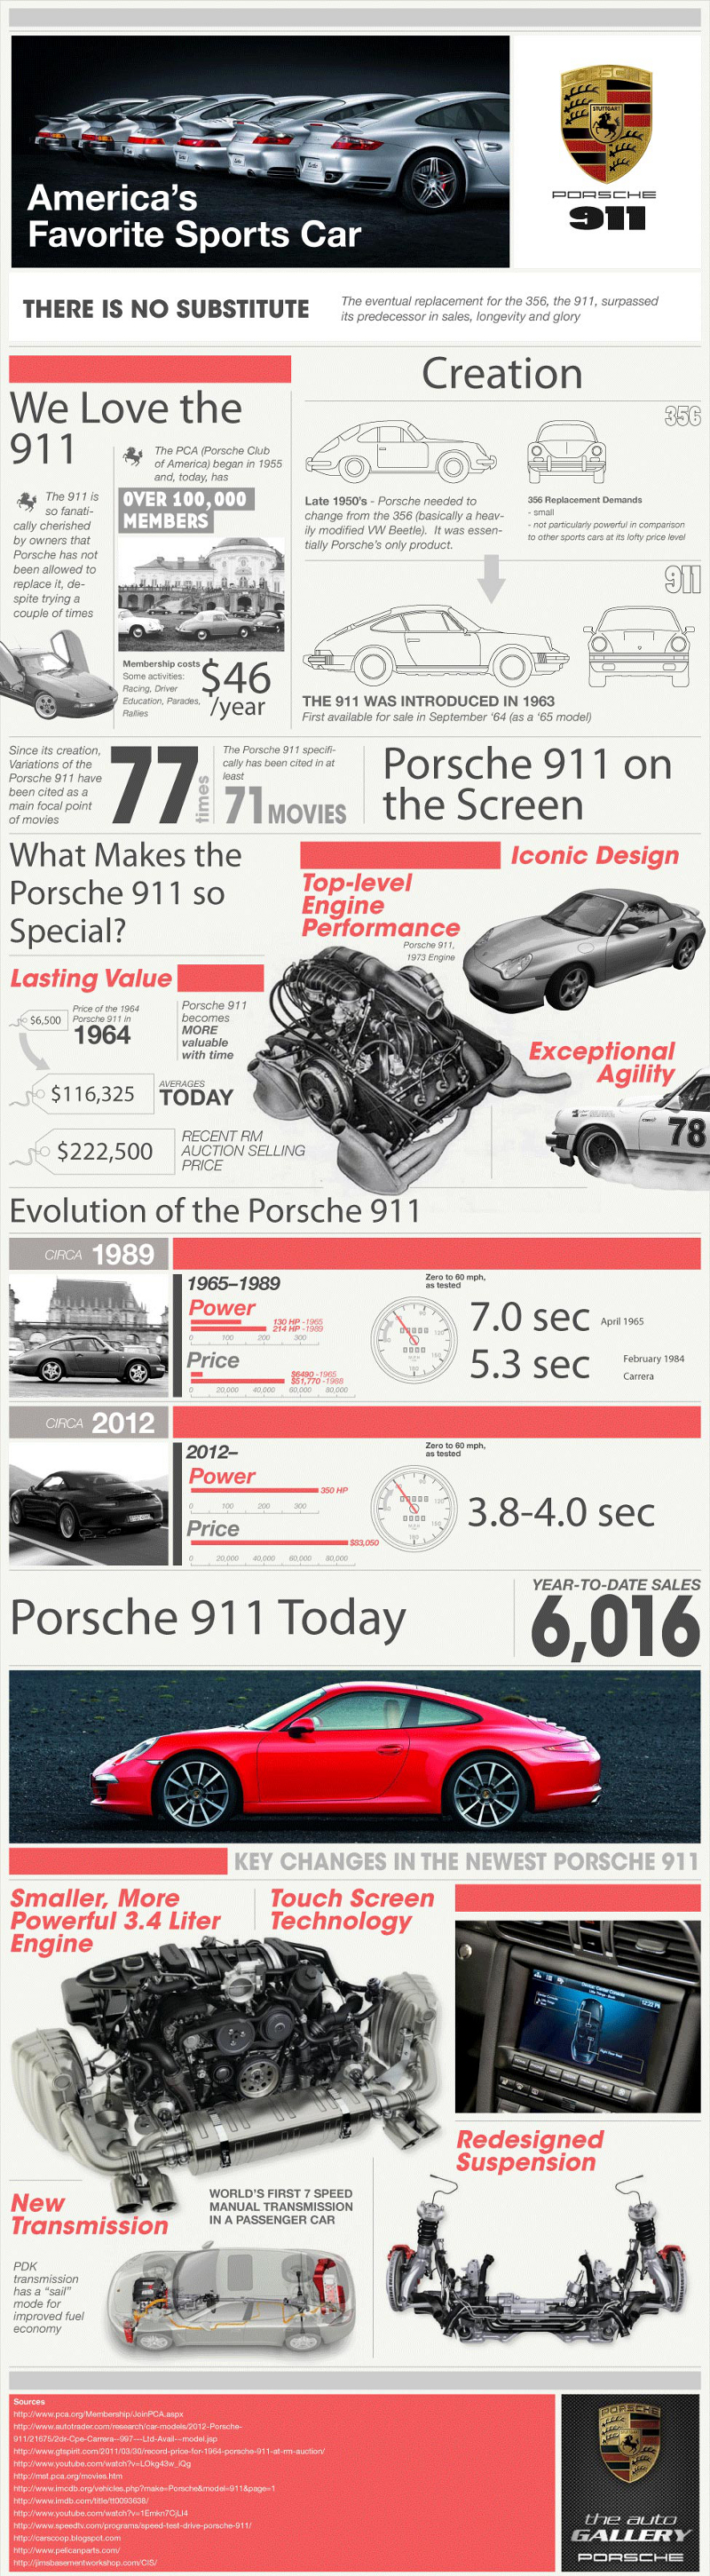 History-of-the-Porsche-911